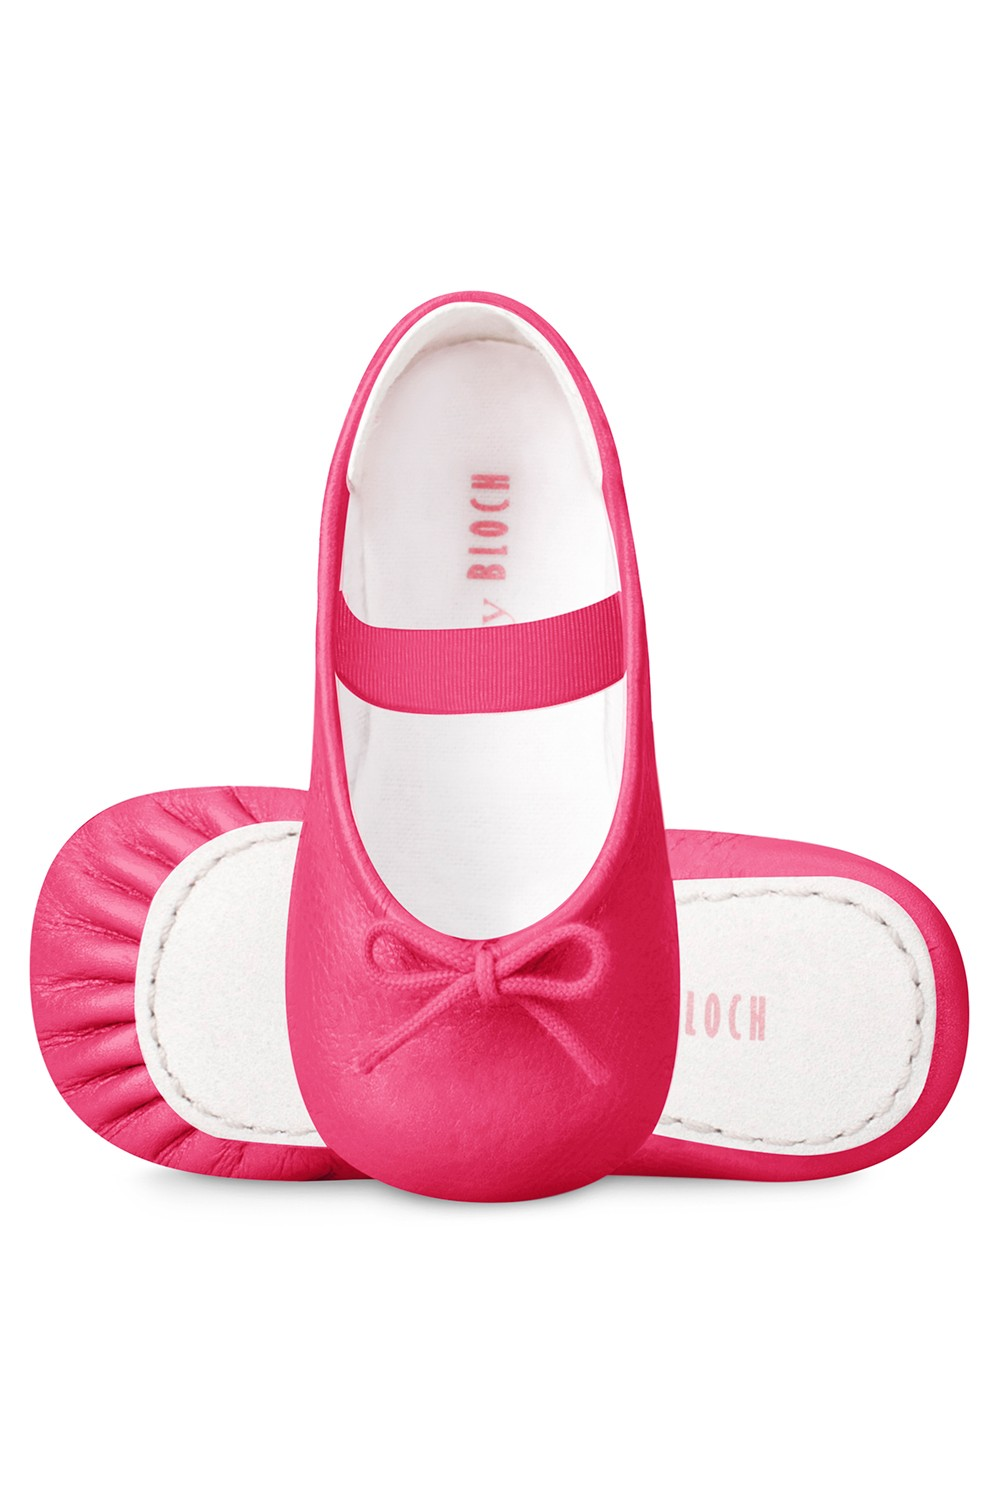 Arabella - Baby Babies Fashion Shoes